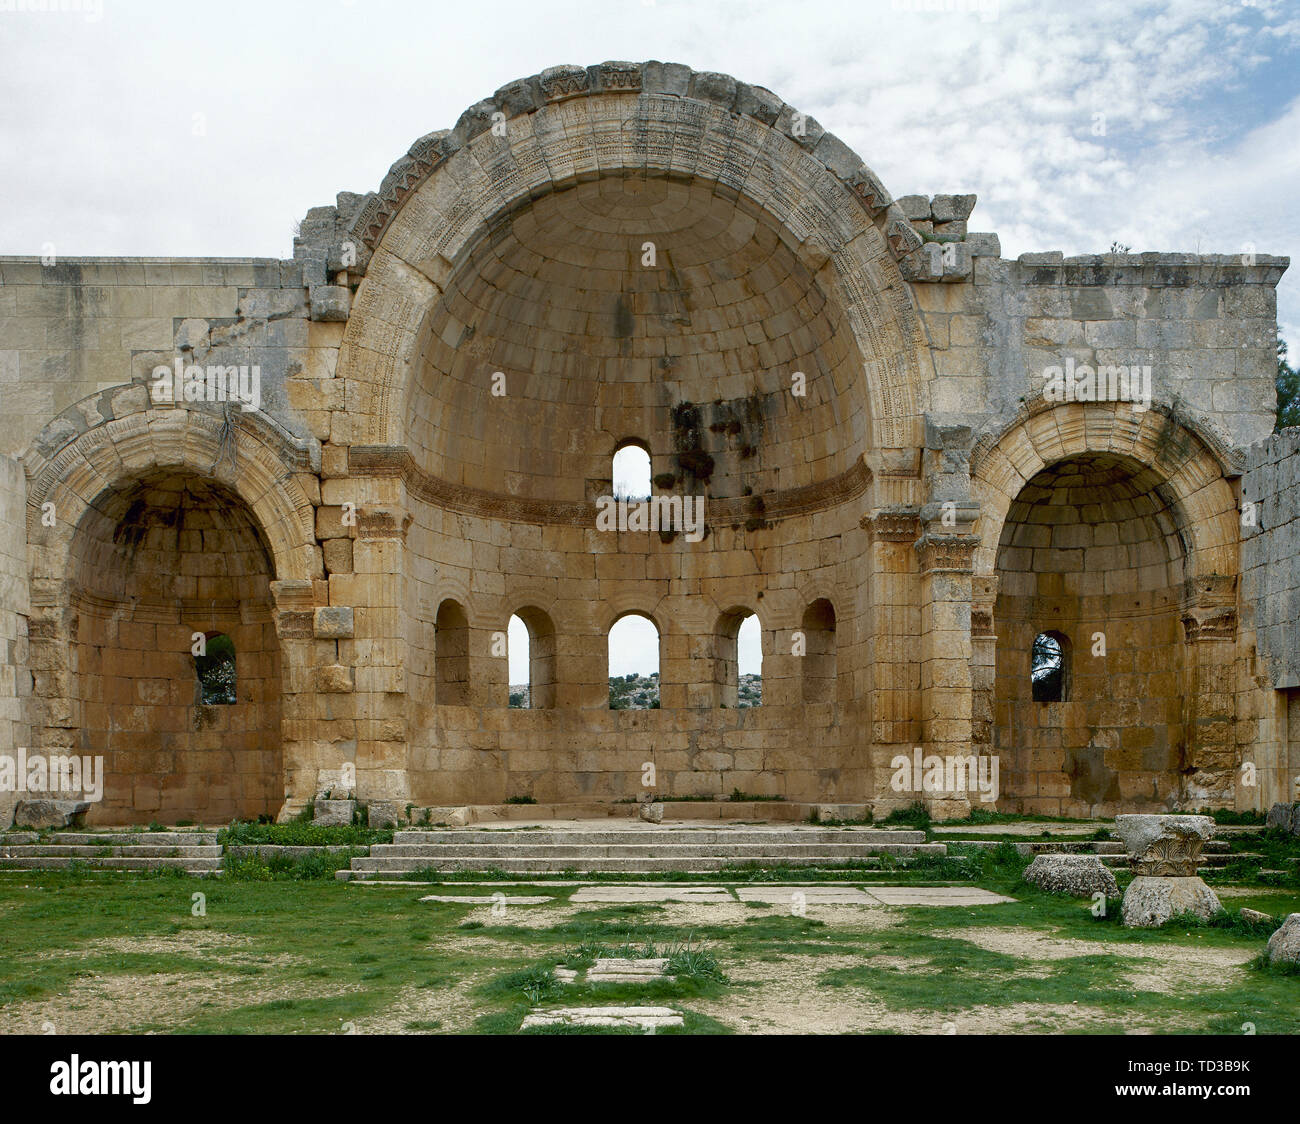 Syria. Aleppo. Church of Saint Simeon Stylites. It was built on the site of the pillar of St. Simeon Stylites. Byzantine style. Octagonal courtyard, bordered by four basilicas in the shape of a rood-tree and decribed as a four-basilica church.  Chapel. Mount Simeon. Historical photography (taken before the Syrian Civil War). - Stock Image